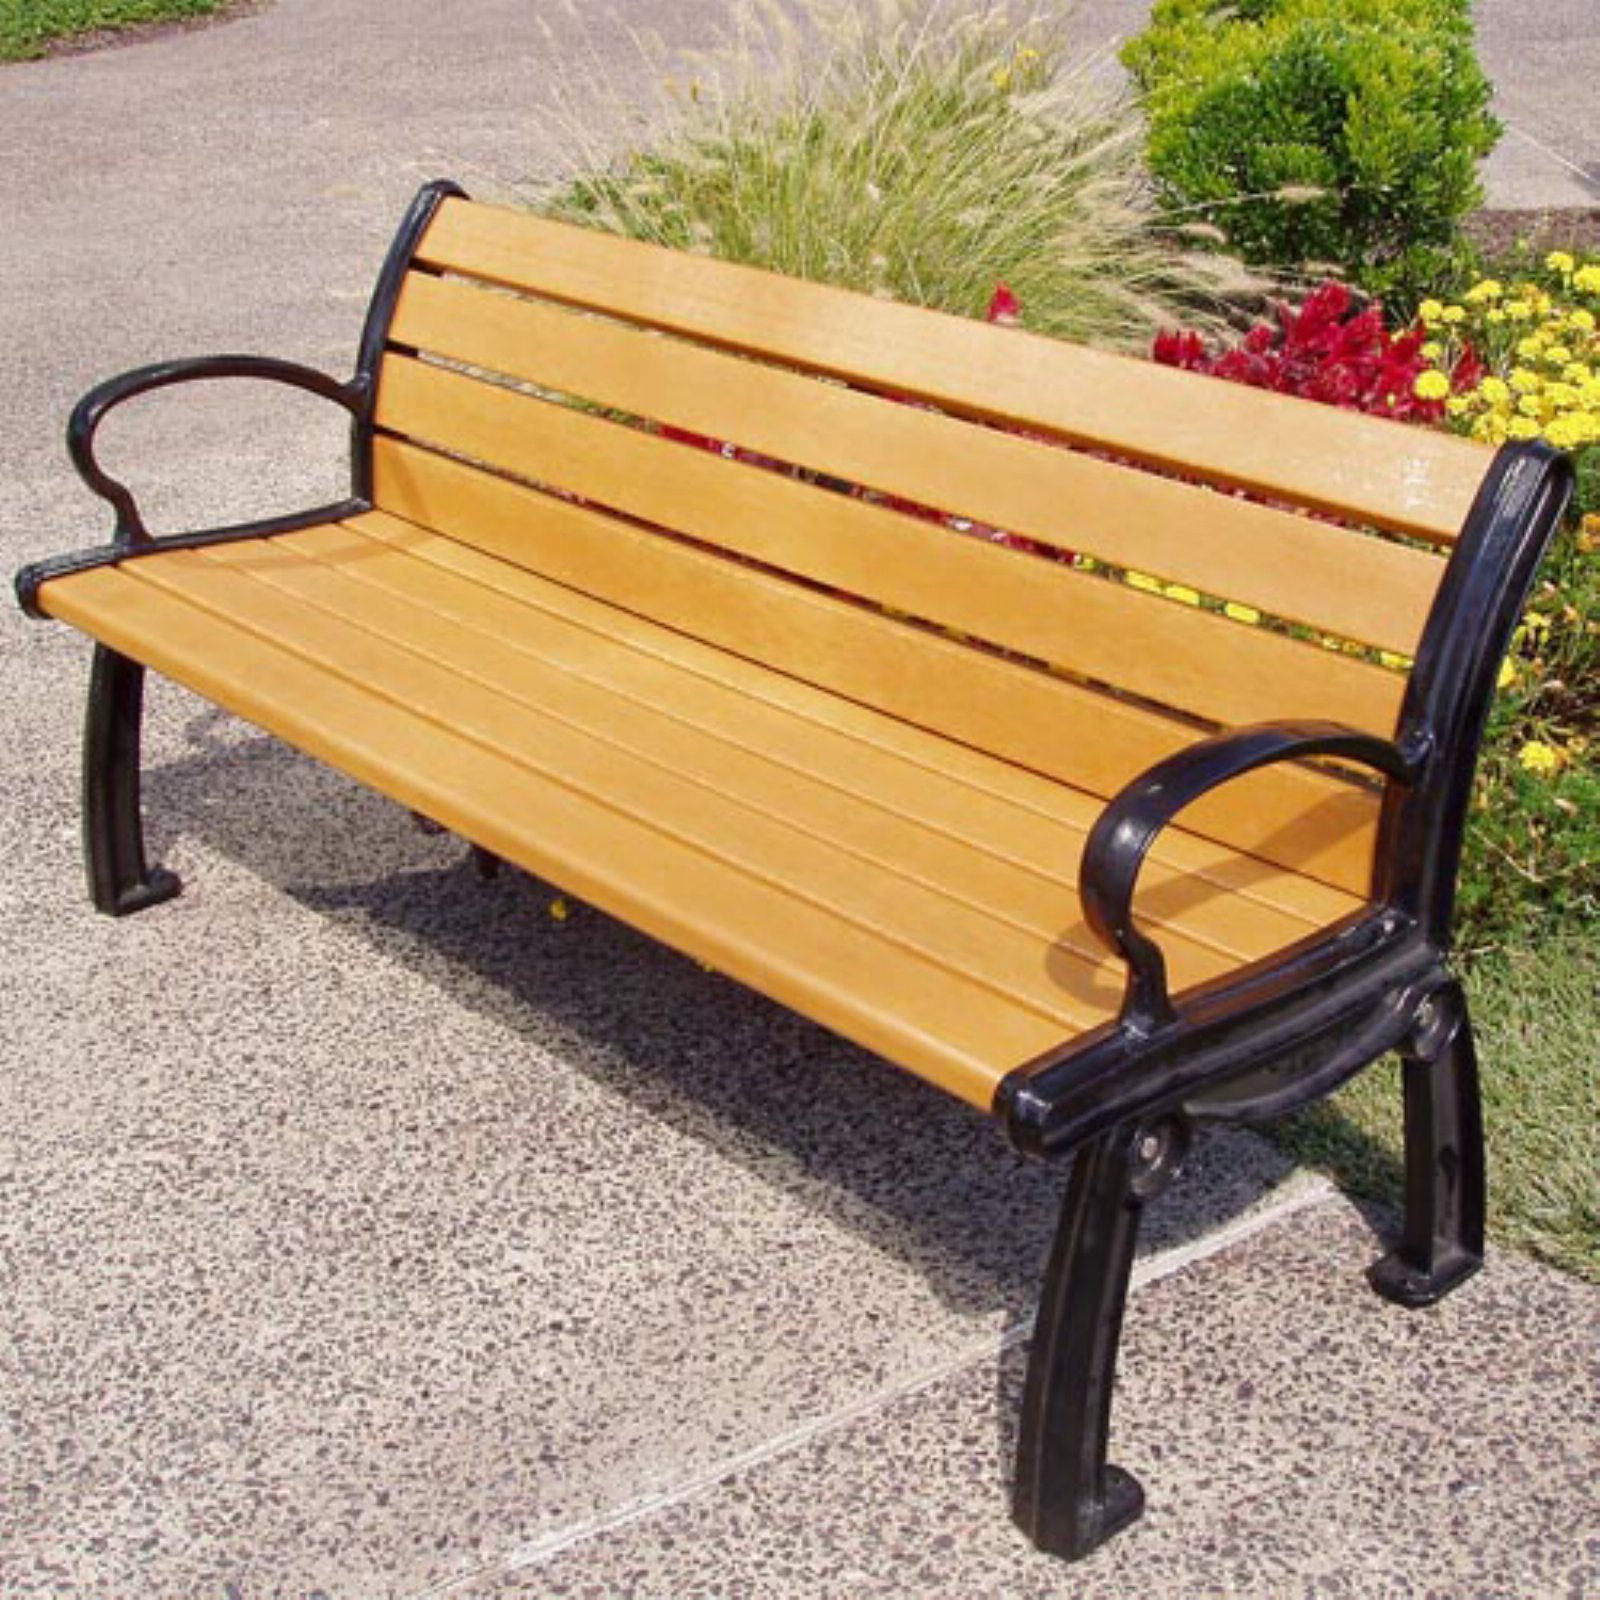 Frog Furnishings Heritage Recycled Plastic 5 Ft Commercial Park Bench With Personalization In 2021 Park Bench Outdoor Bench Recycled Plastic